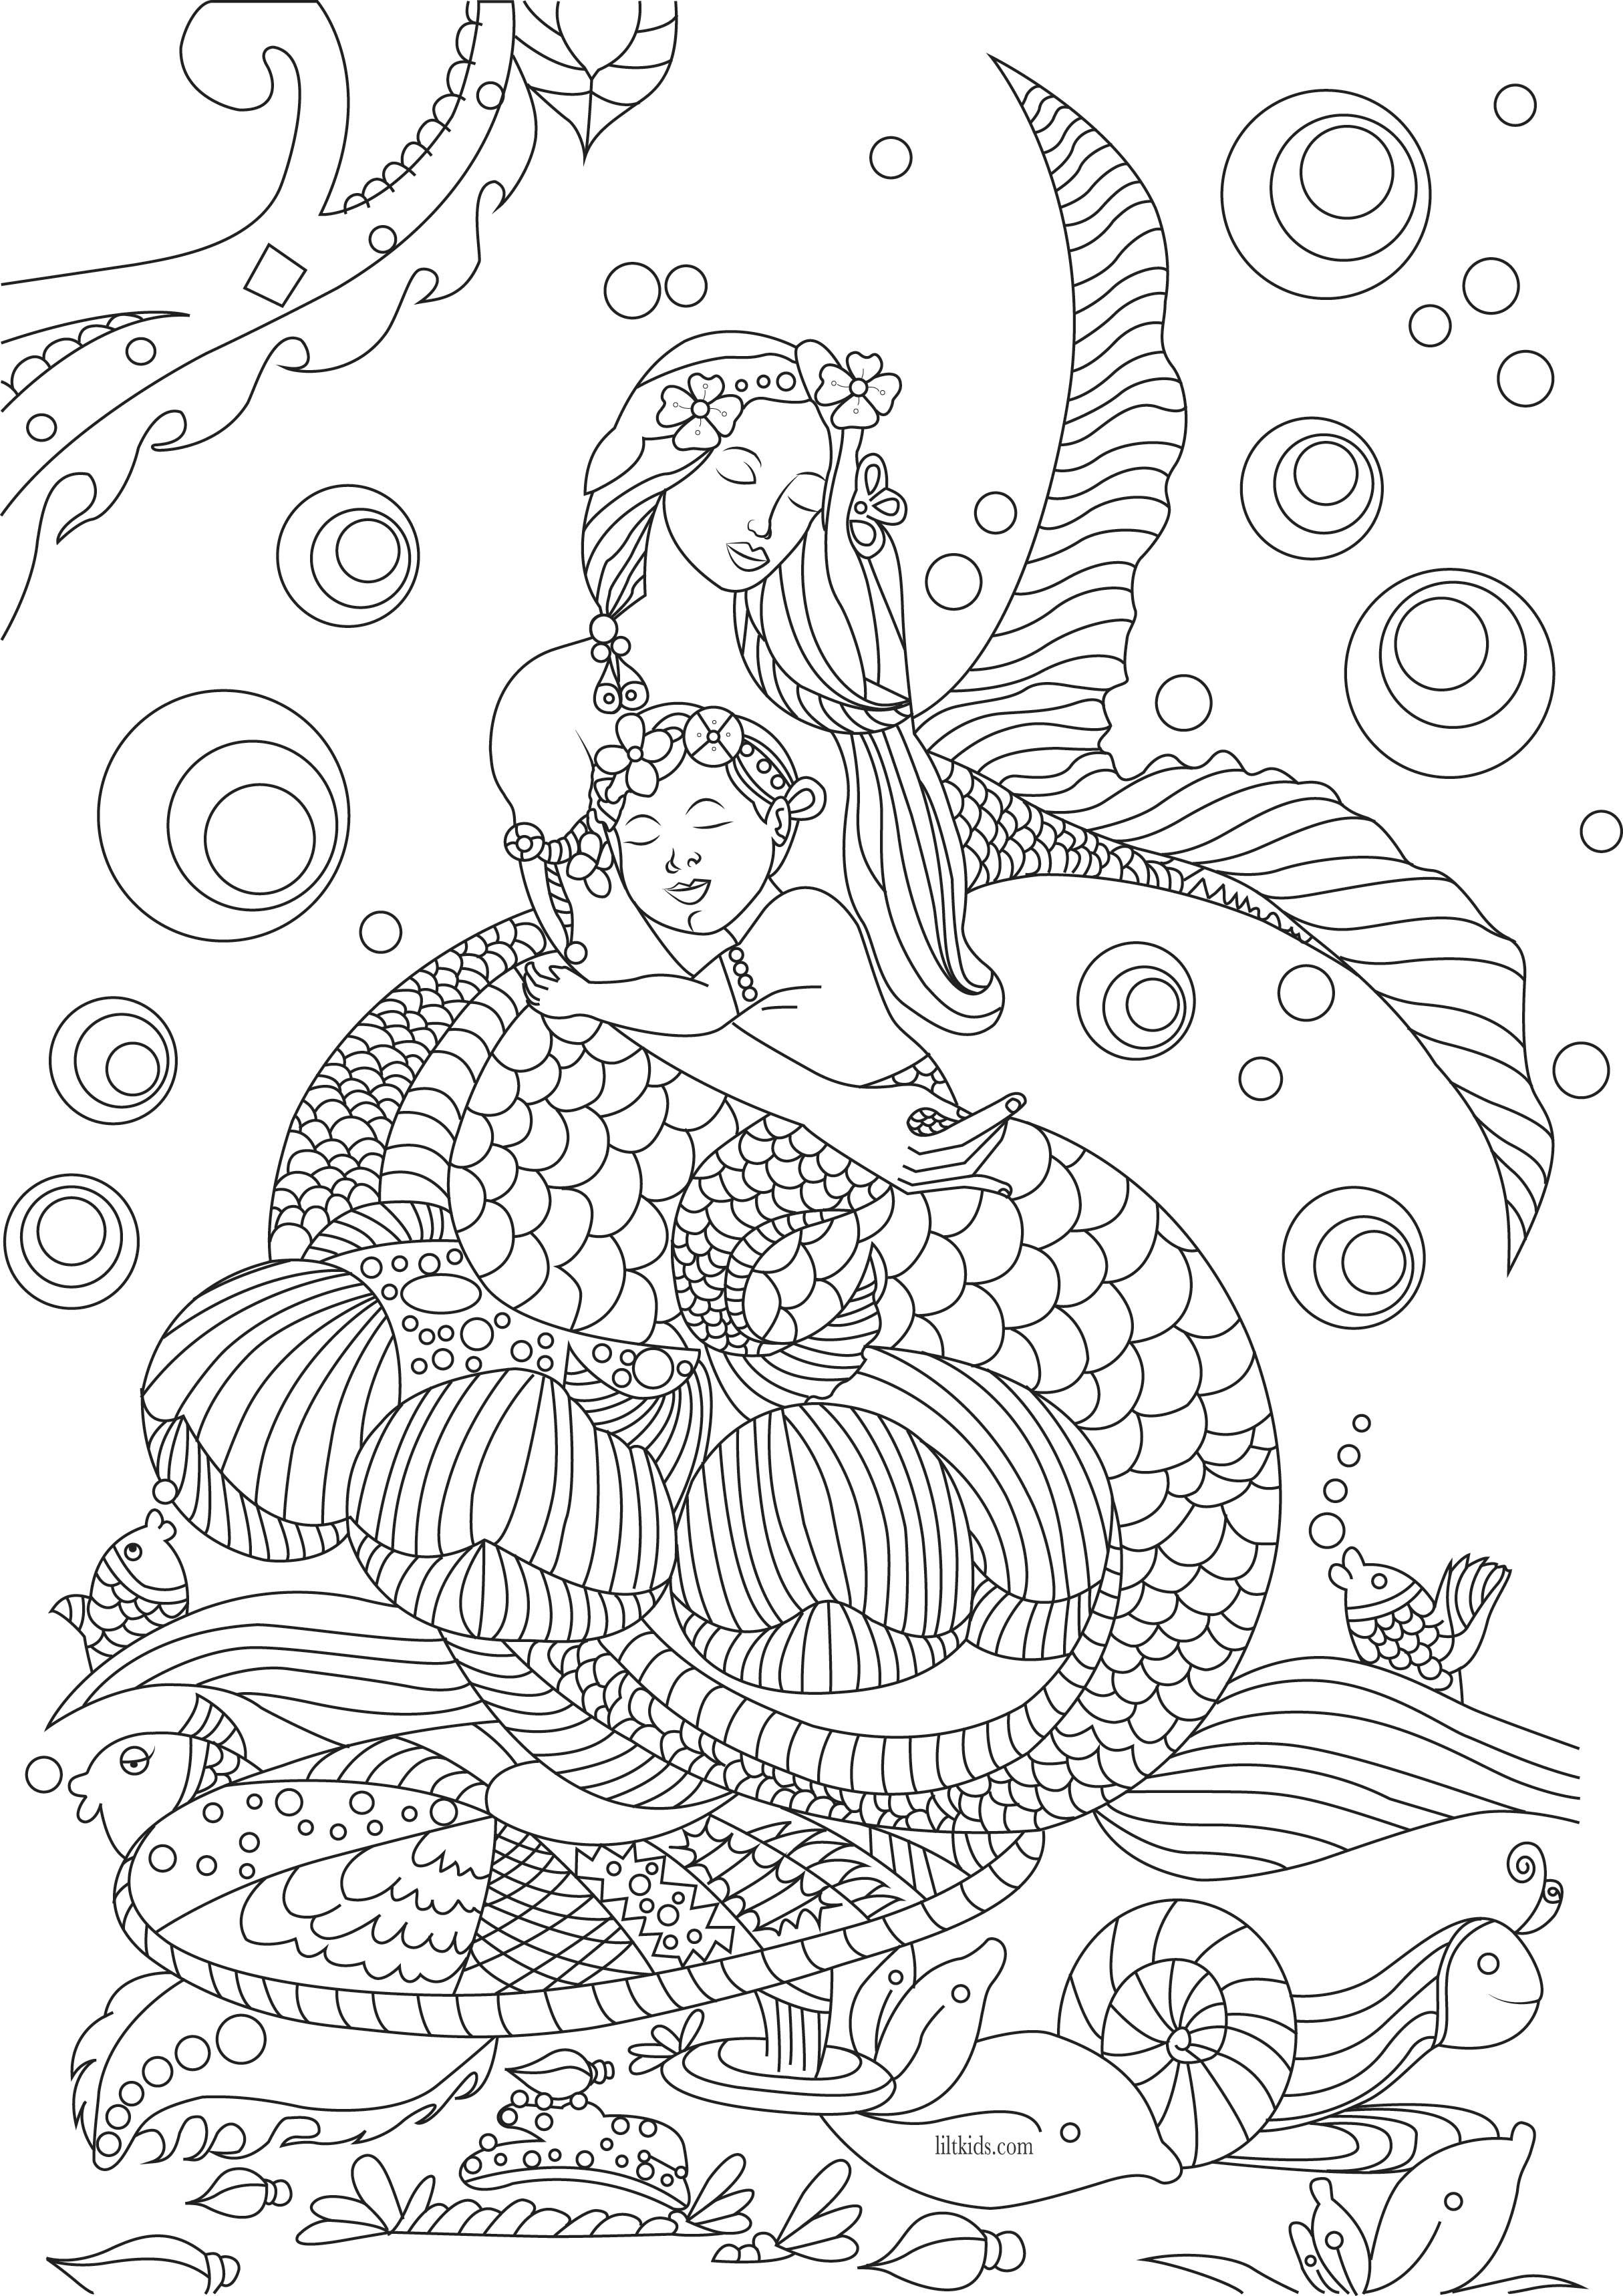 Free Beautiful Mermaid Adult Coloring Book Image From Liltkids Com